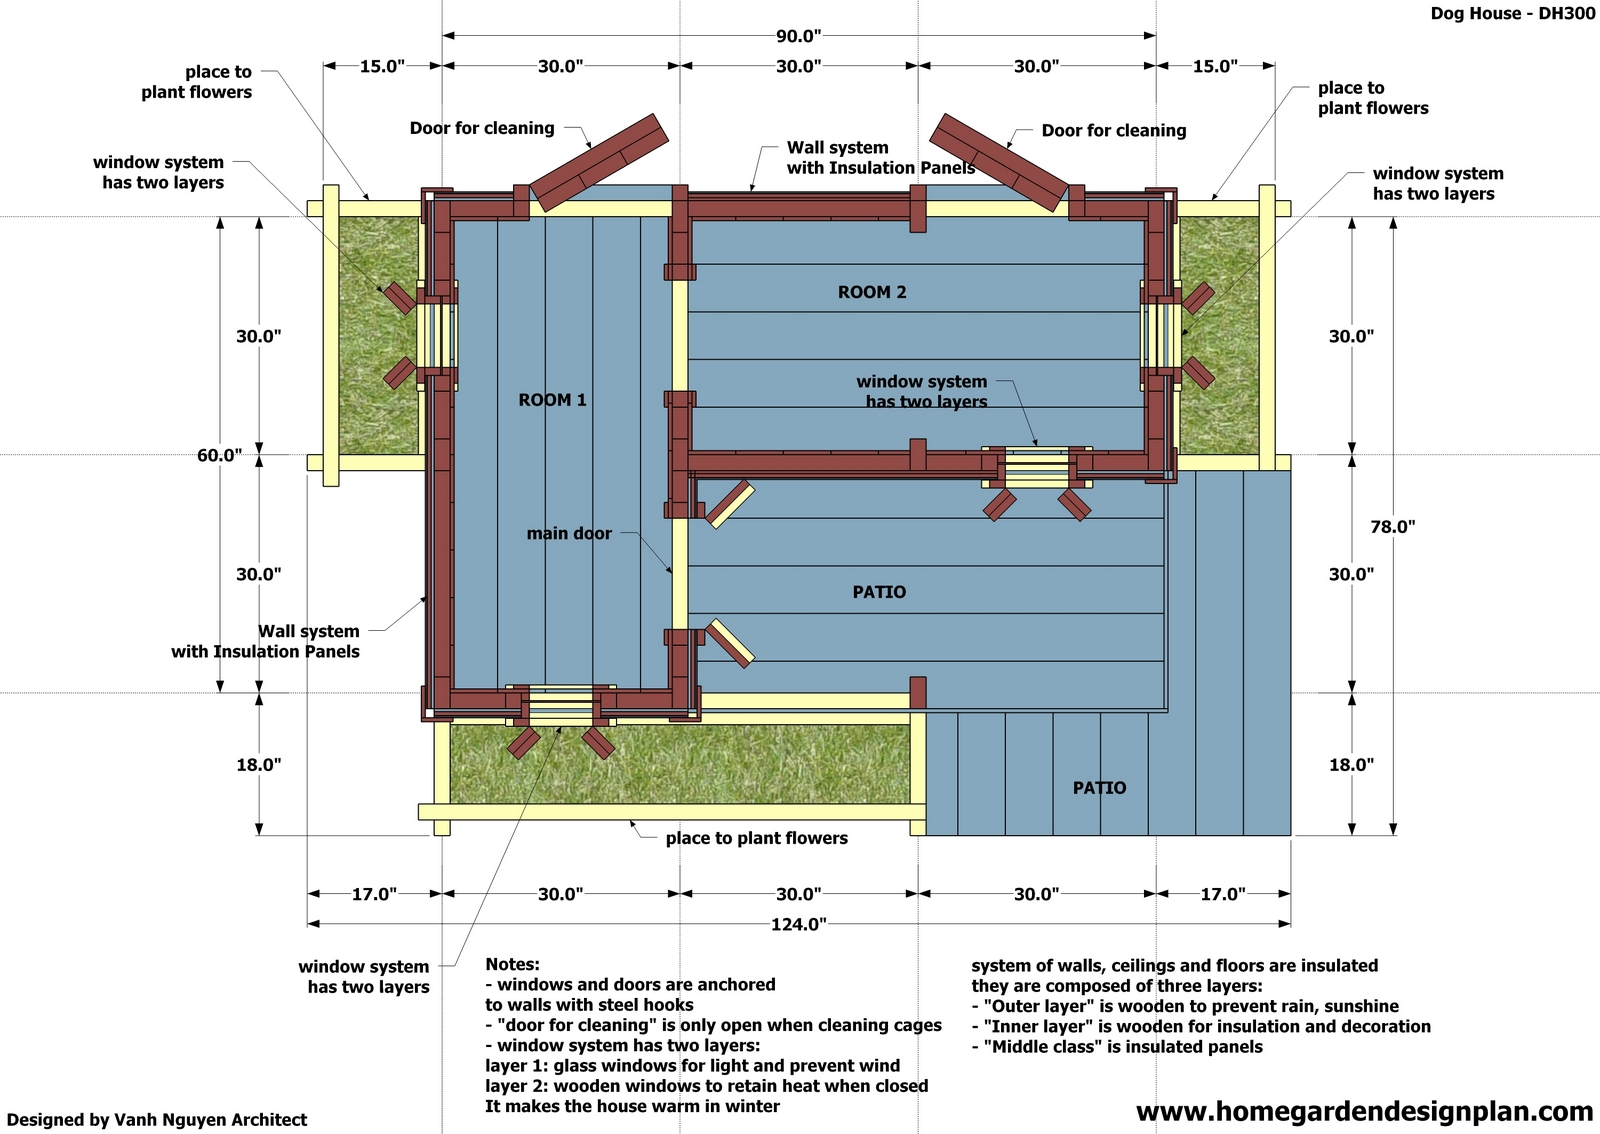 Insulated dog house plans for large dogs free - photo#6